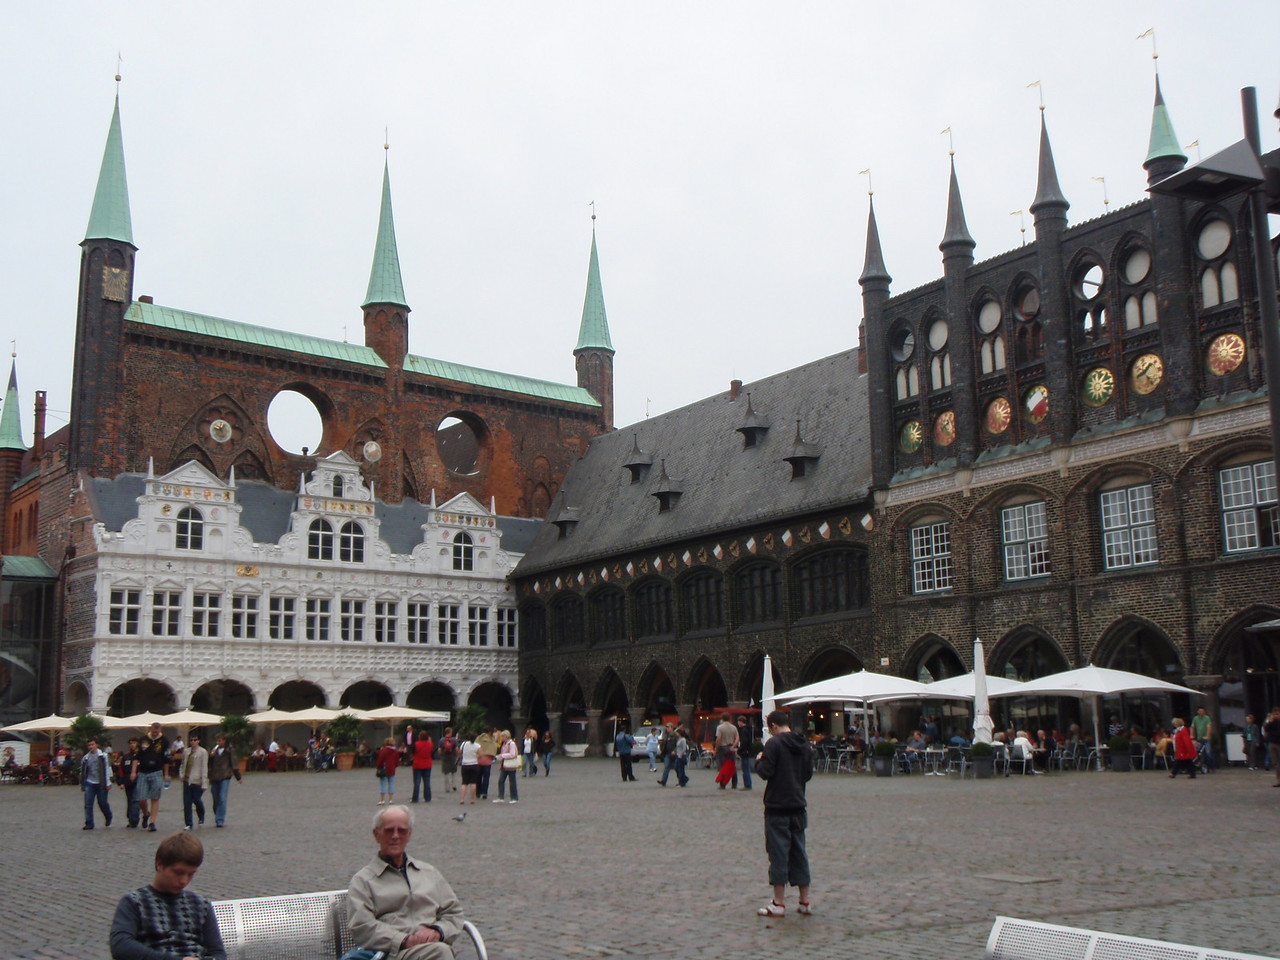 The Lubeck Rathaus and the central square.